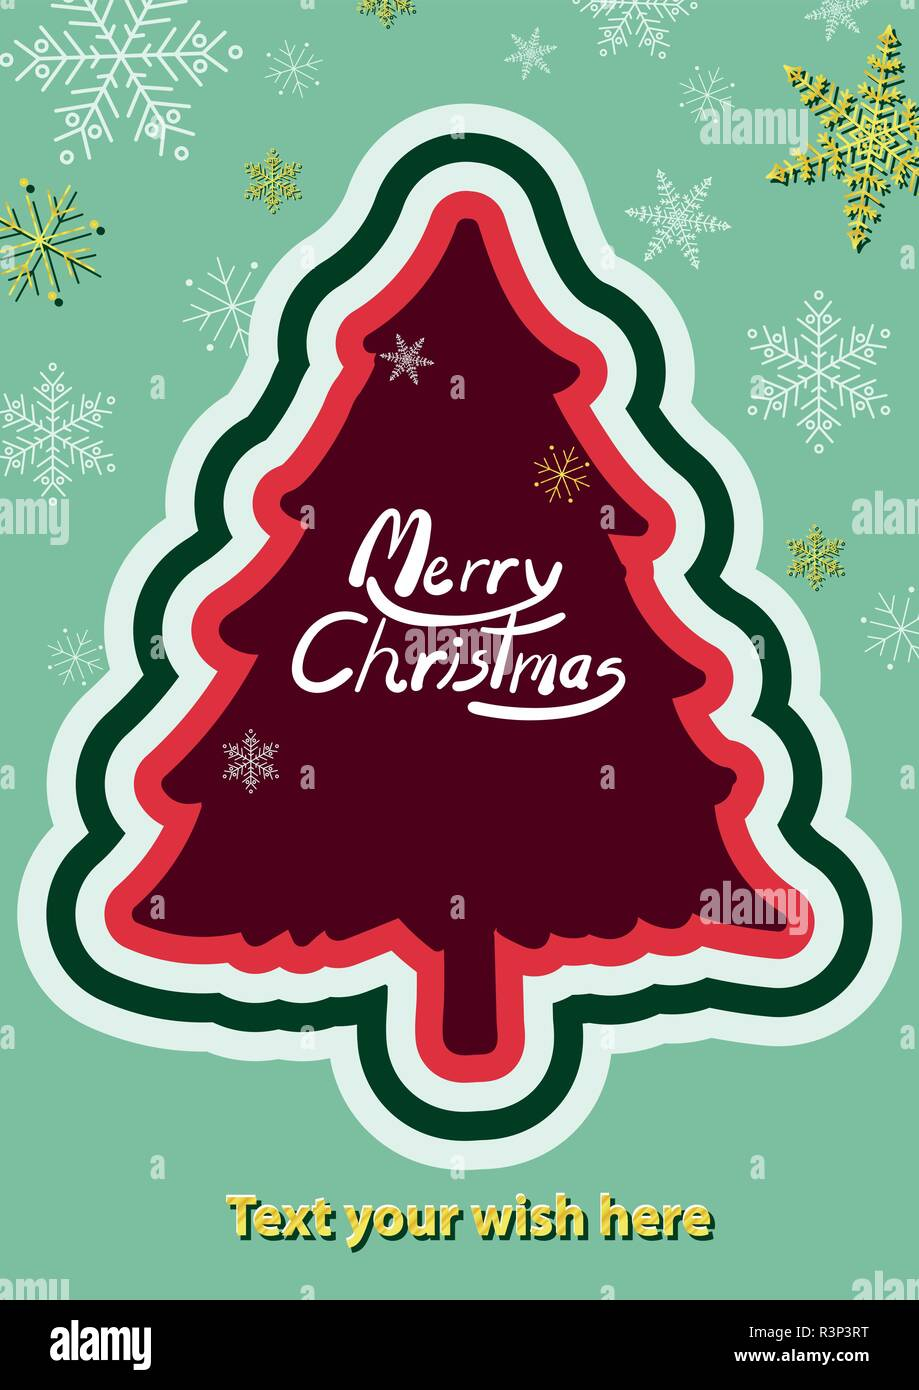 poster design for christmas new year in simple style with space for text background template for advertisement or cover red christmas tree at the